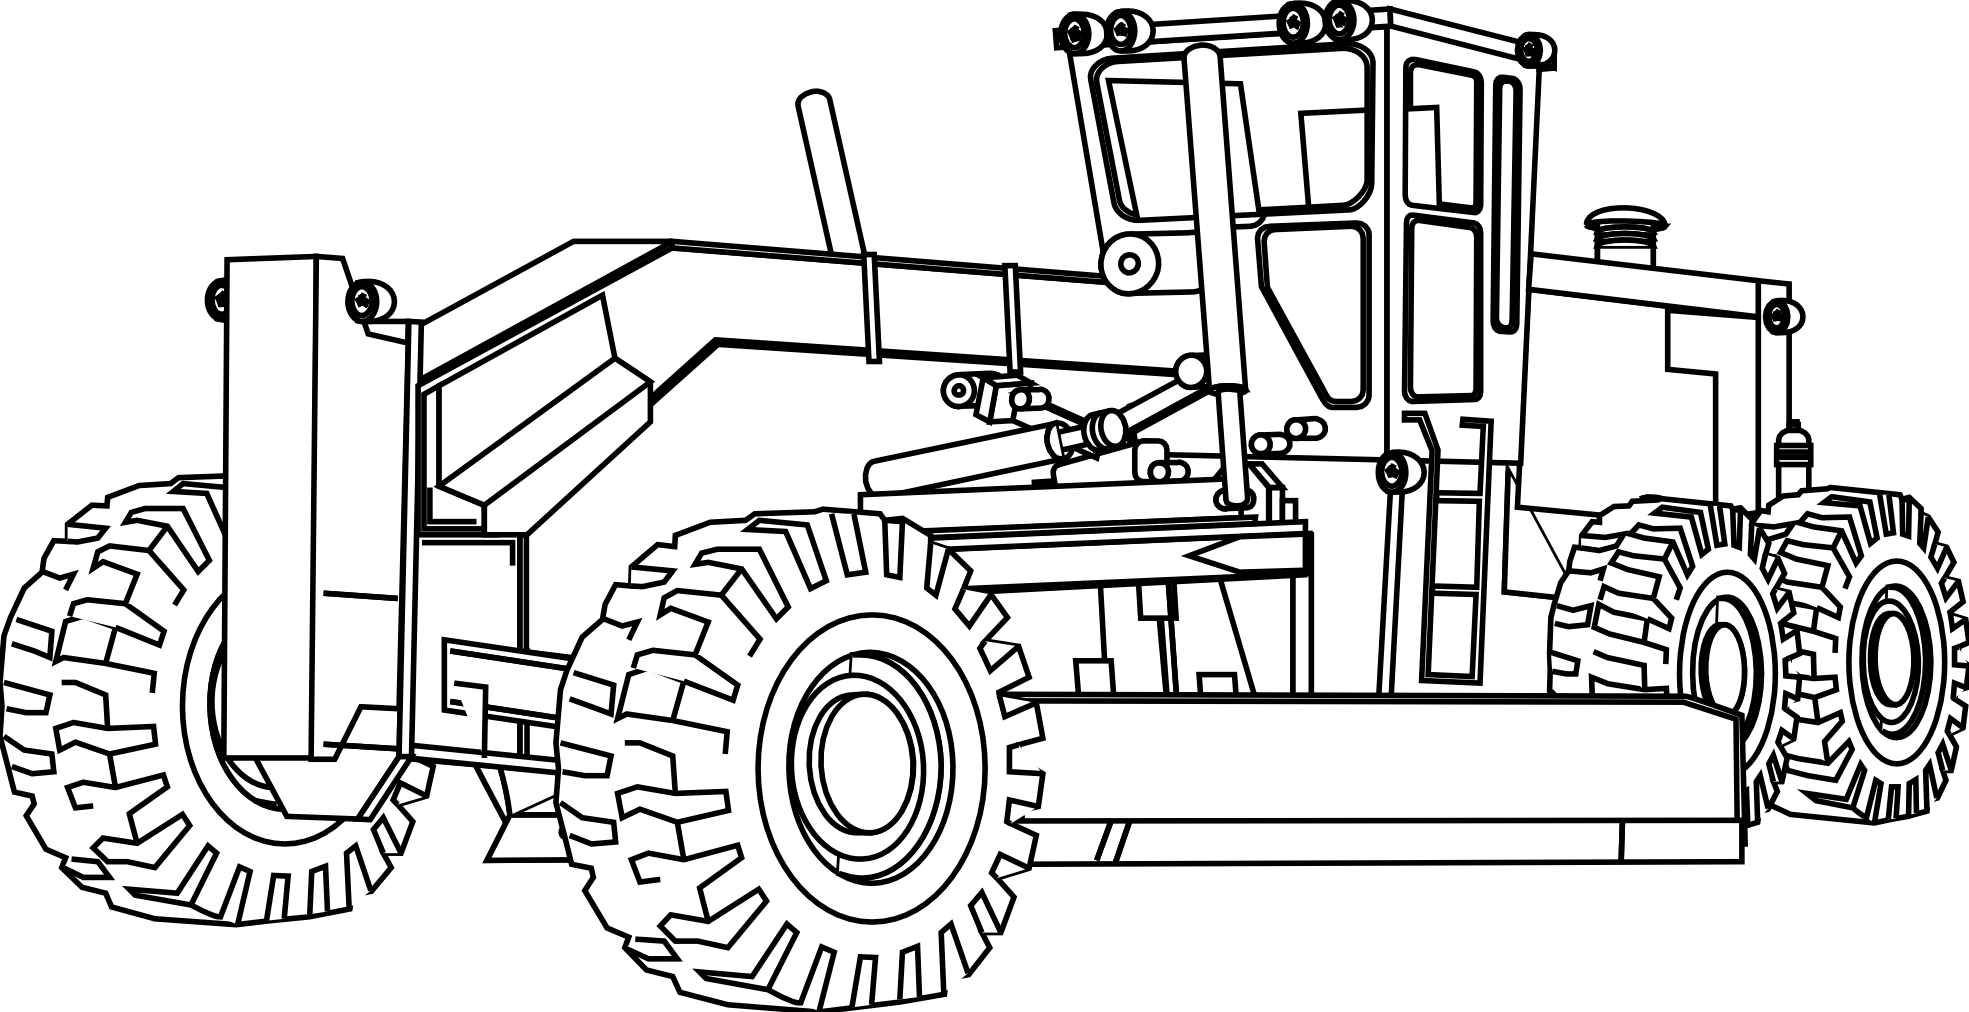 Coloring pictures of cars truck tractors - Printable Pictures Of Construction Equipment Artfavor Heavy Equipment Coloring Book Svg